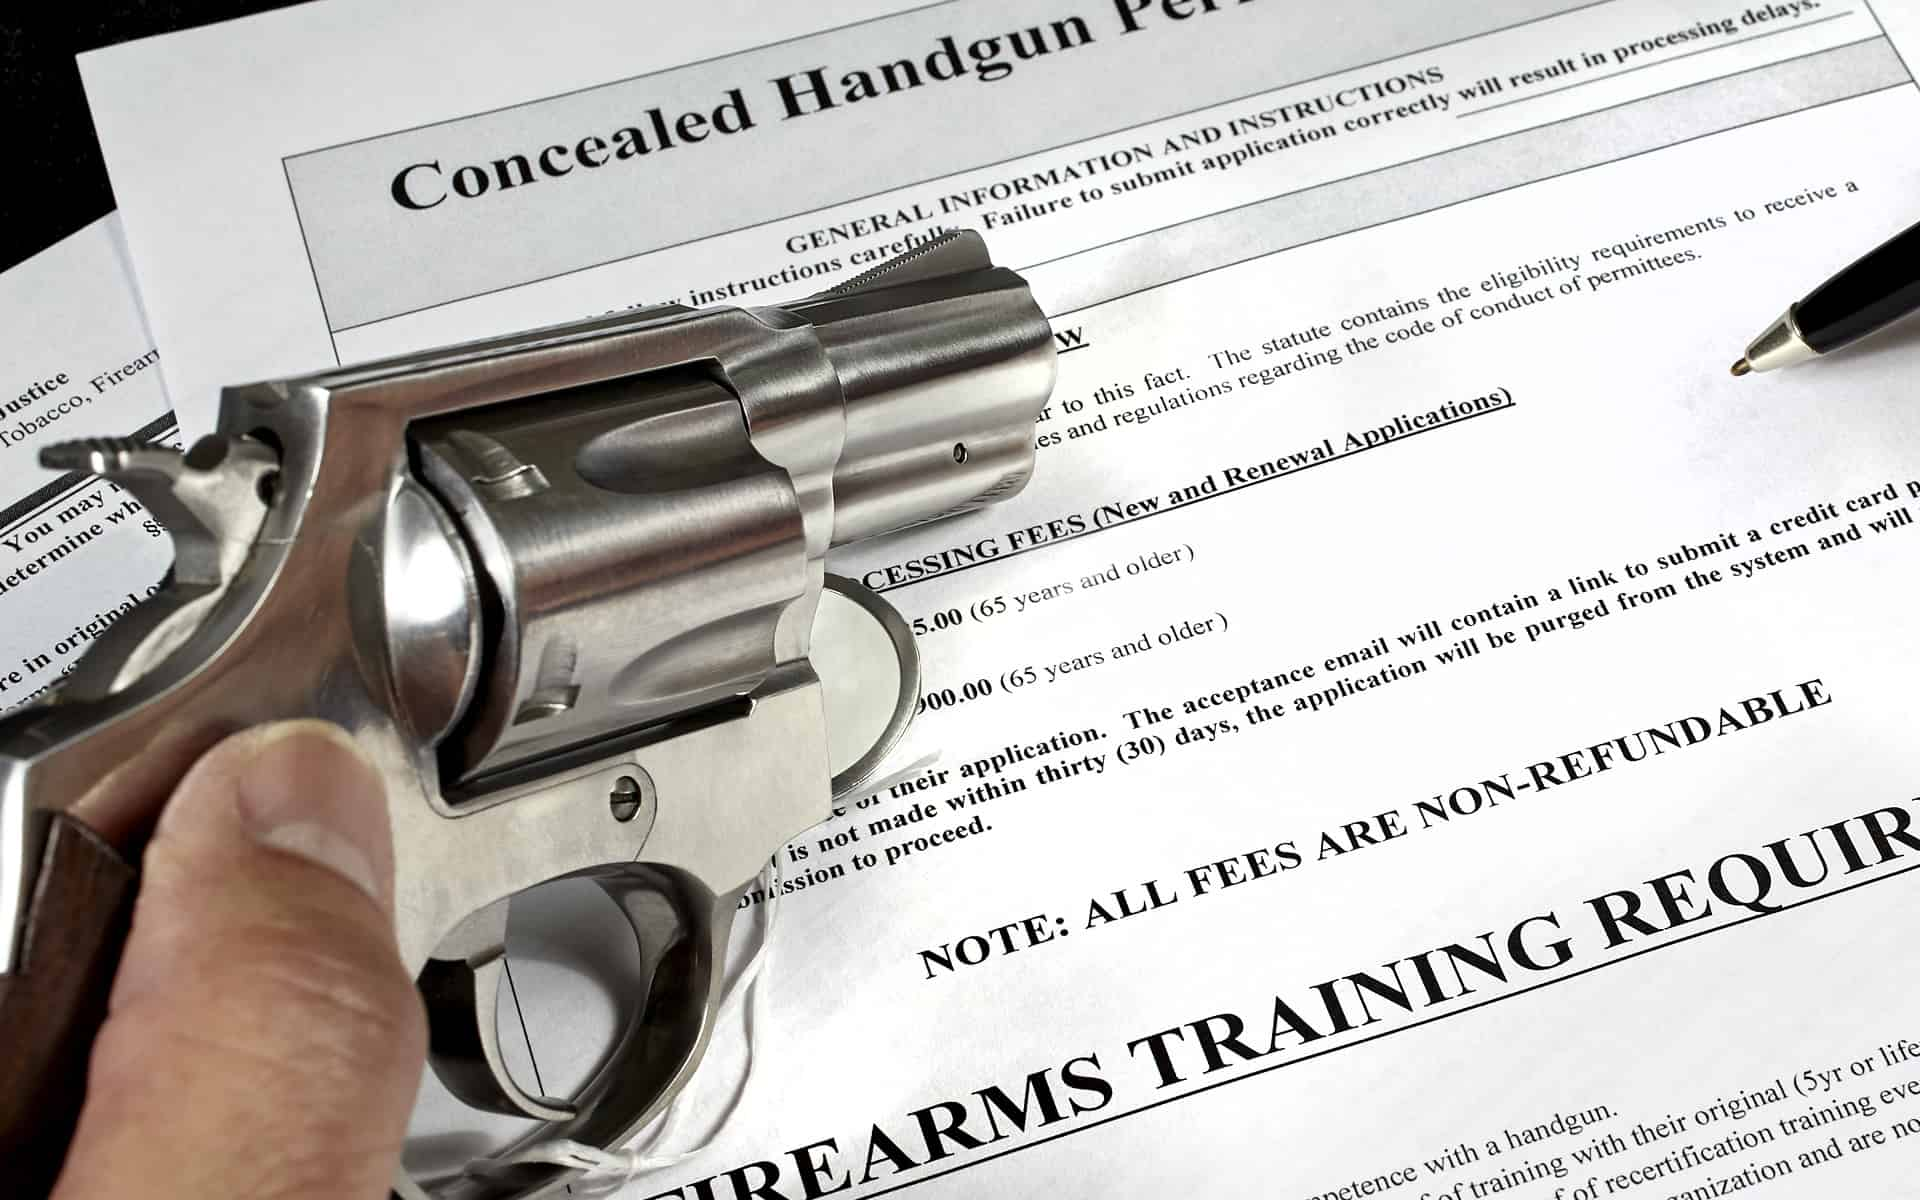 Firearms applications & renewals, Competency applications and renewals